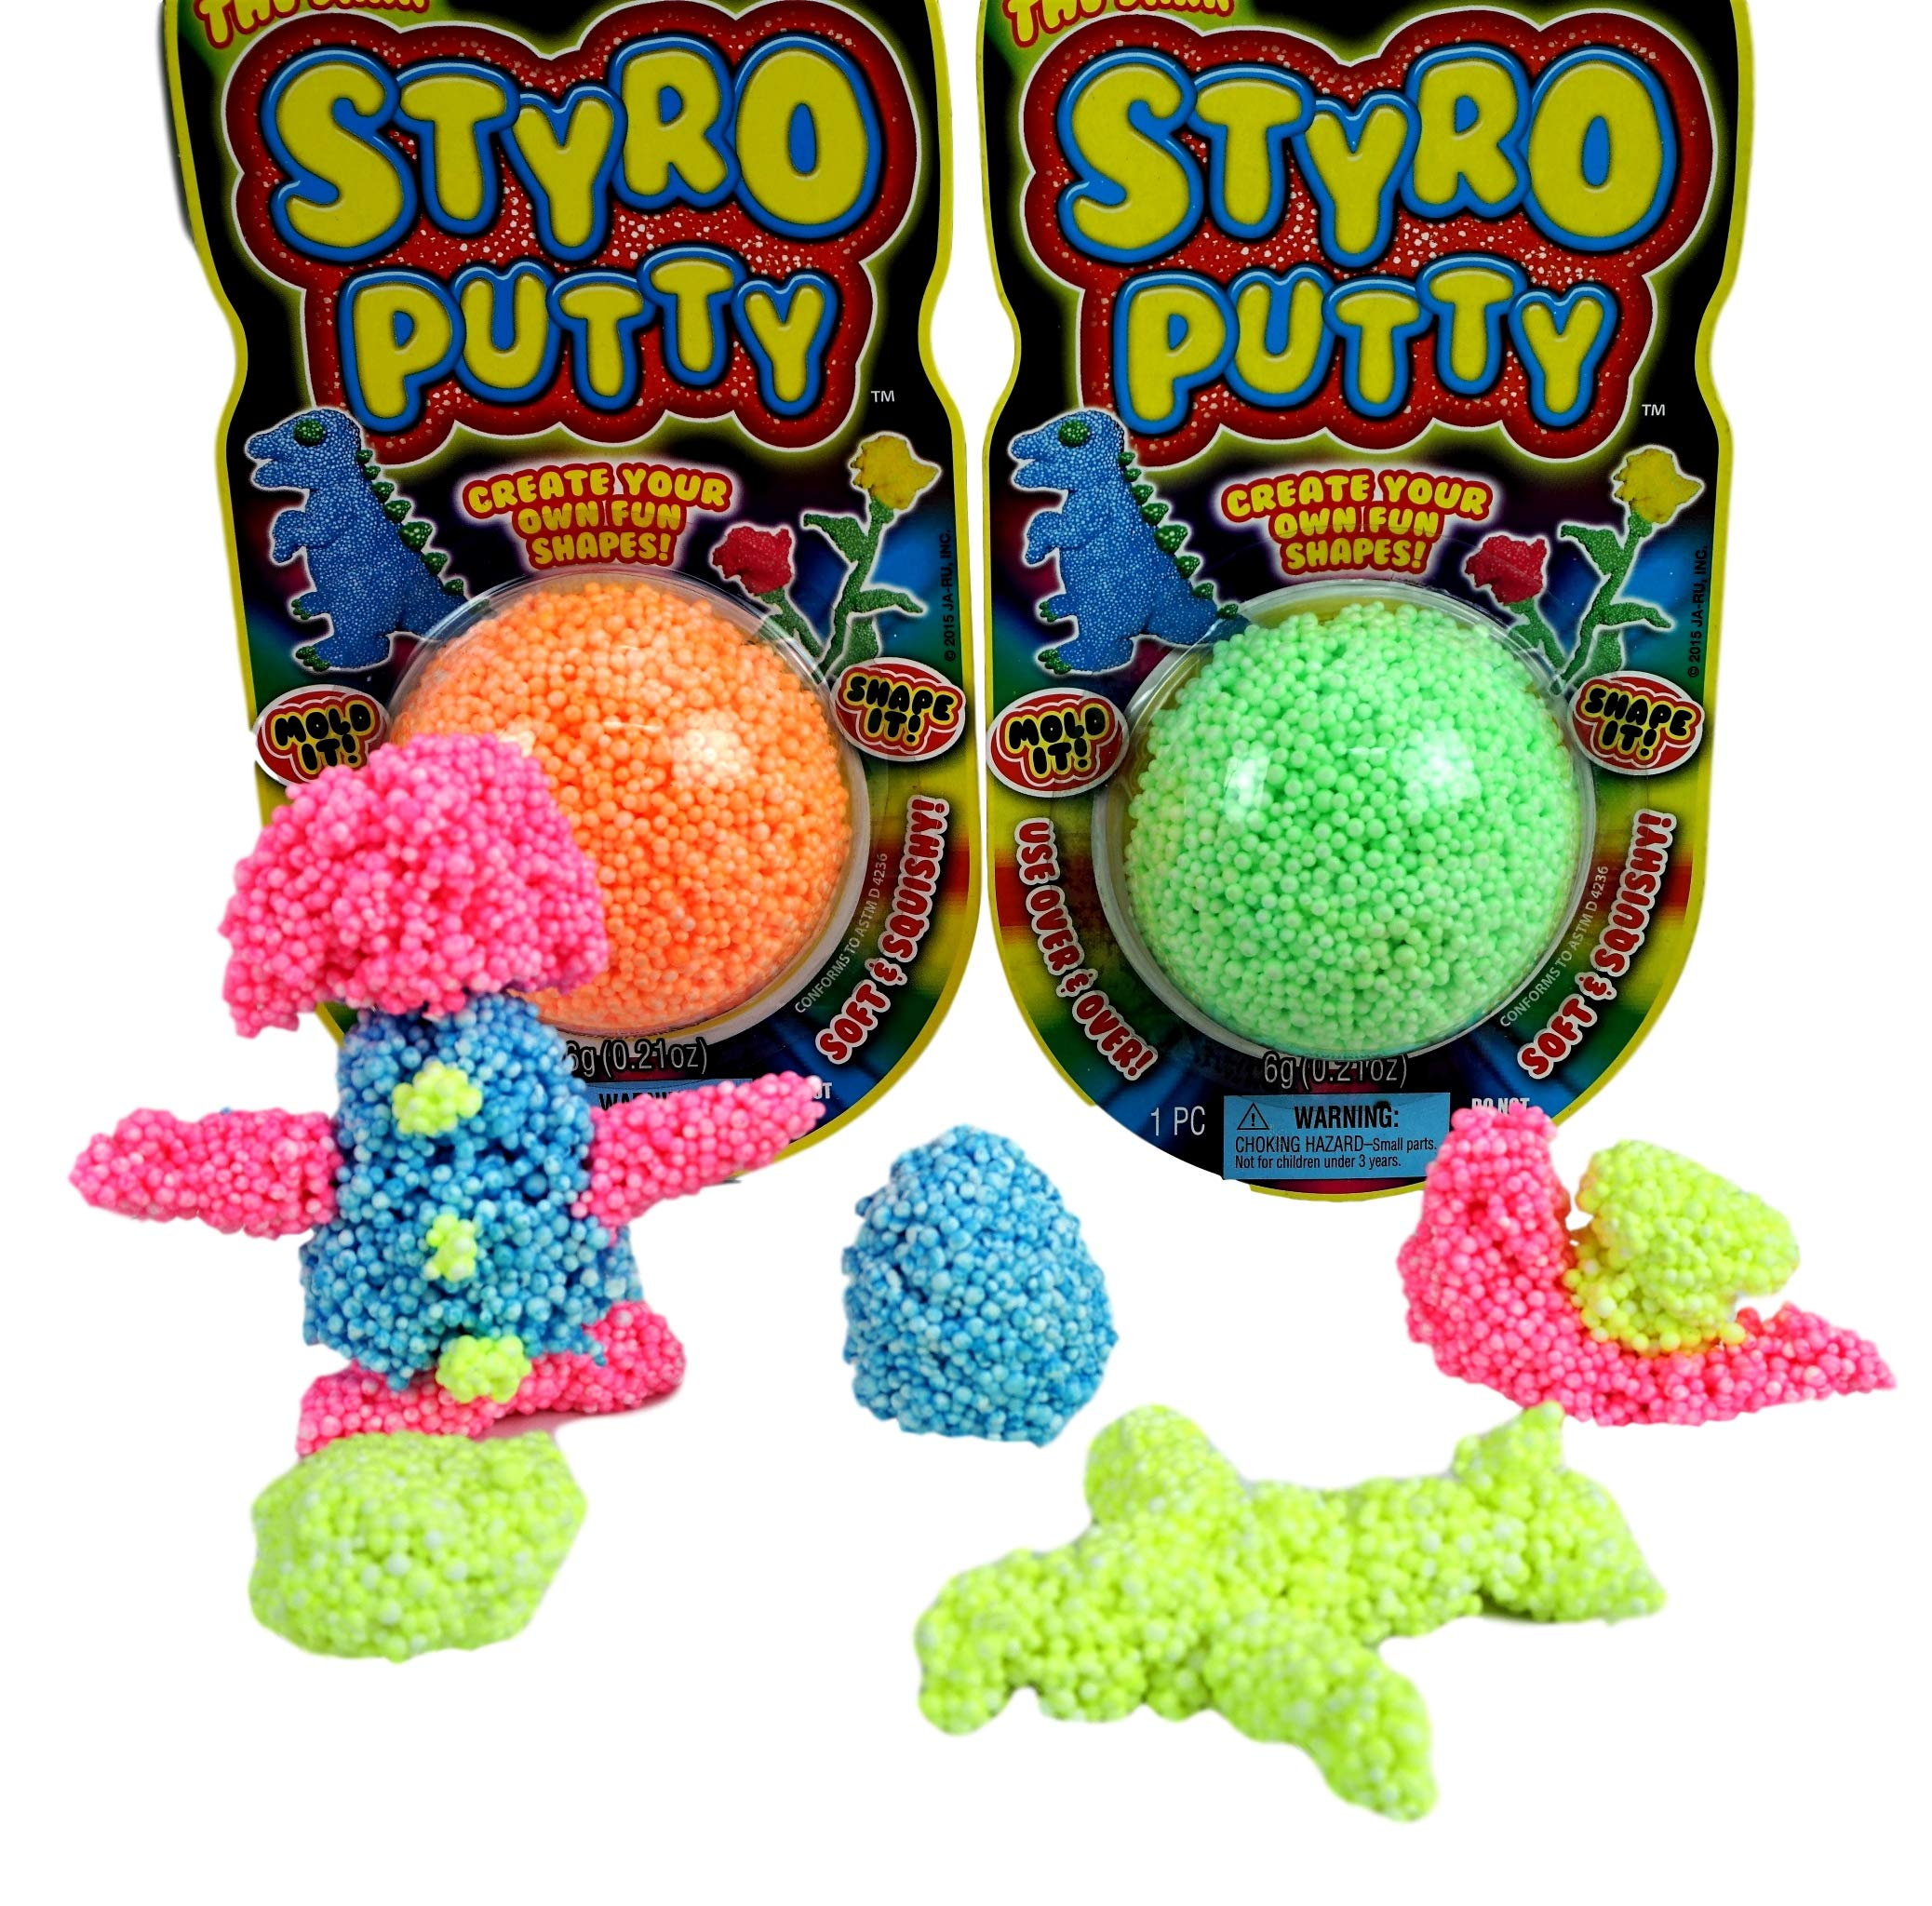 JA-RU STYRO Putty Foam Glows in The Dark (Pack of 144) Styrofoam Shapable Mold Soft and Squishy | Item #1328-144 by JA-RU (Image #4)